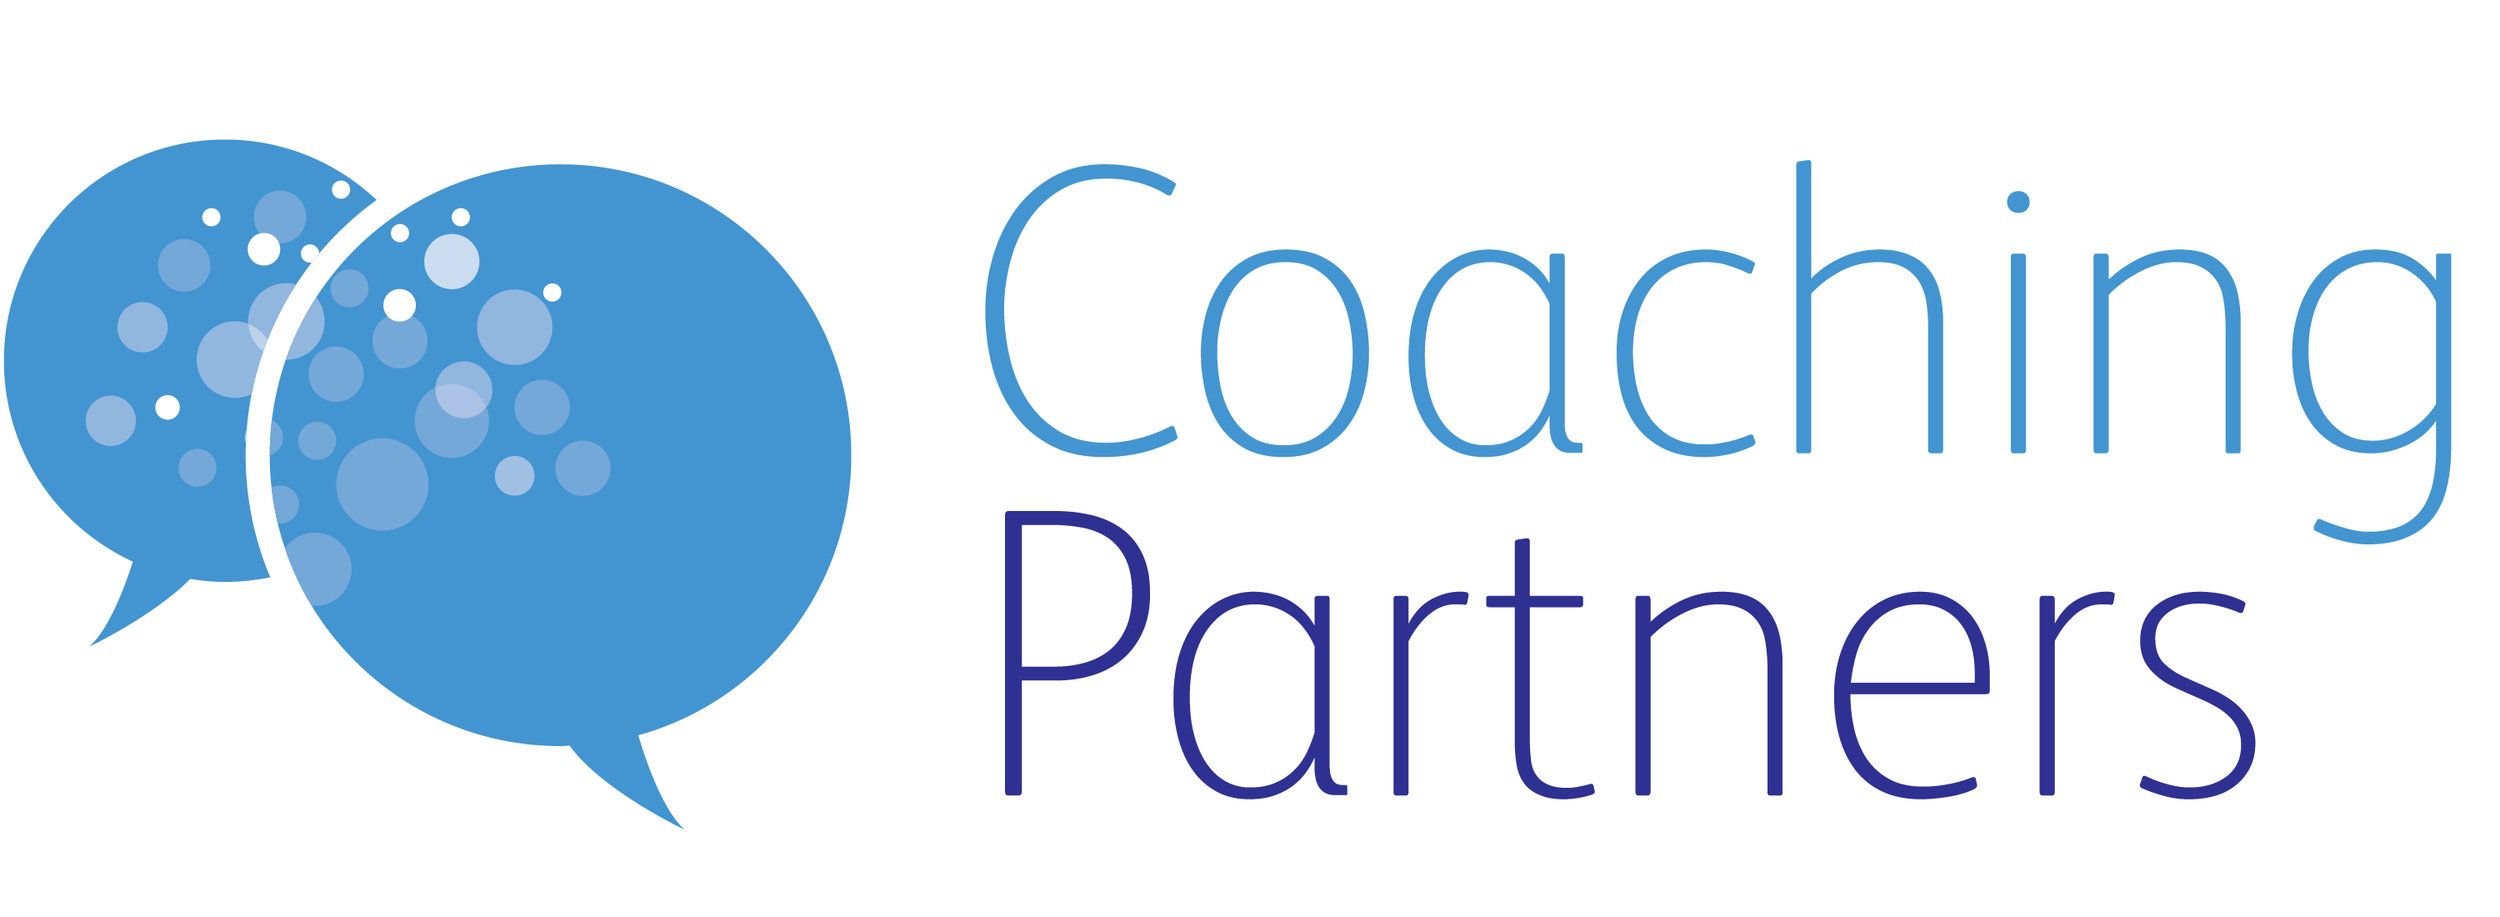 Coaching, mentoring & counselling   Coaching is a way of finding new approaches to problems, breaking patterns and moving forward. Our team can talk through one-to-one sessions or team skill development that will have a significant, real impact on how your schools runs.